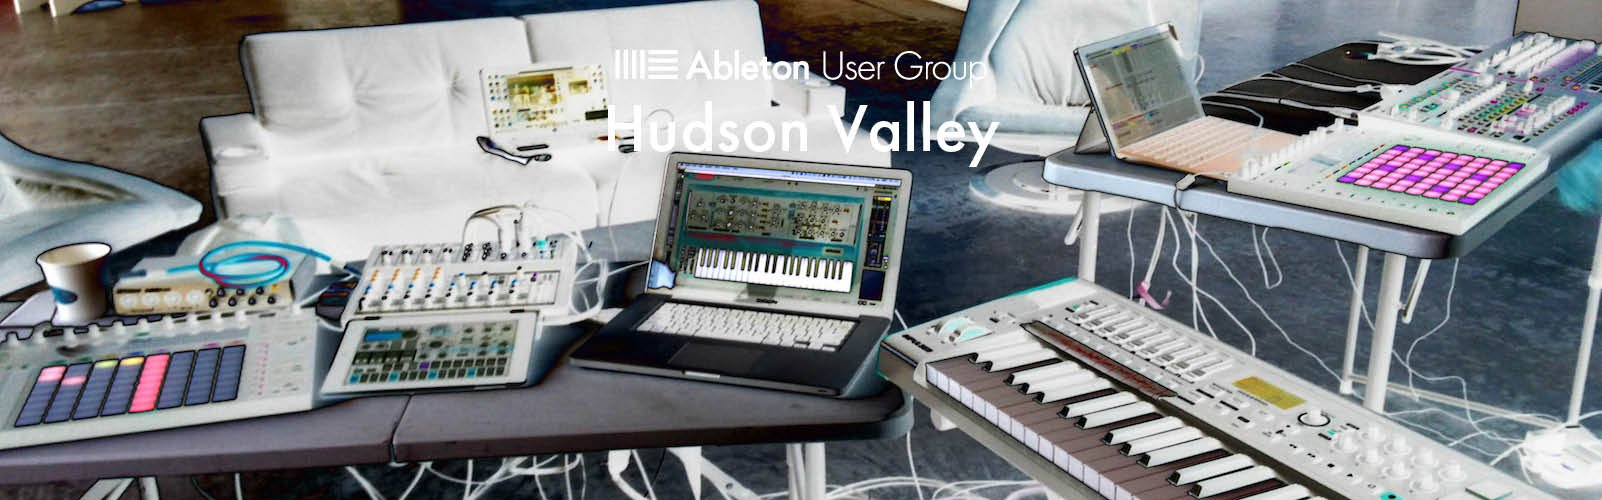 Hudson Valley User Group Banner New.jpg